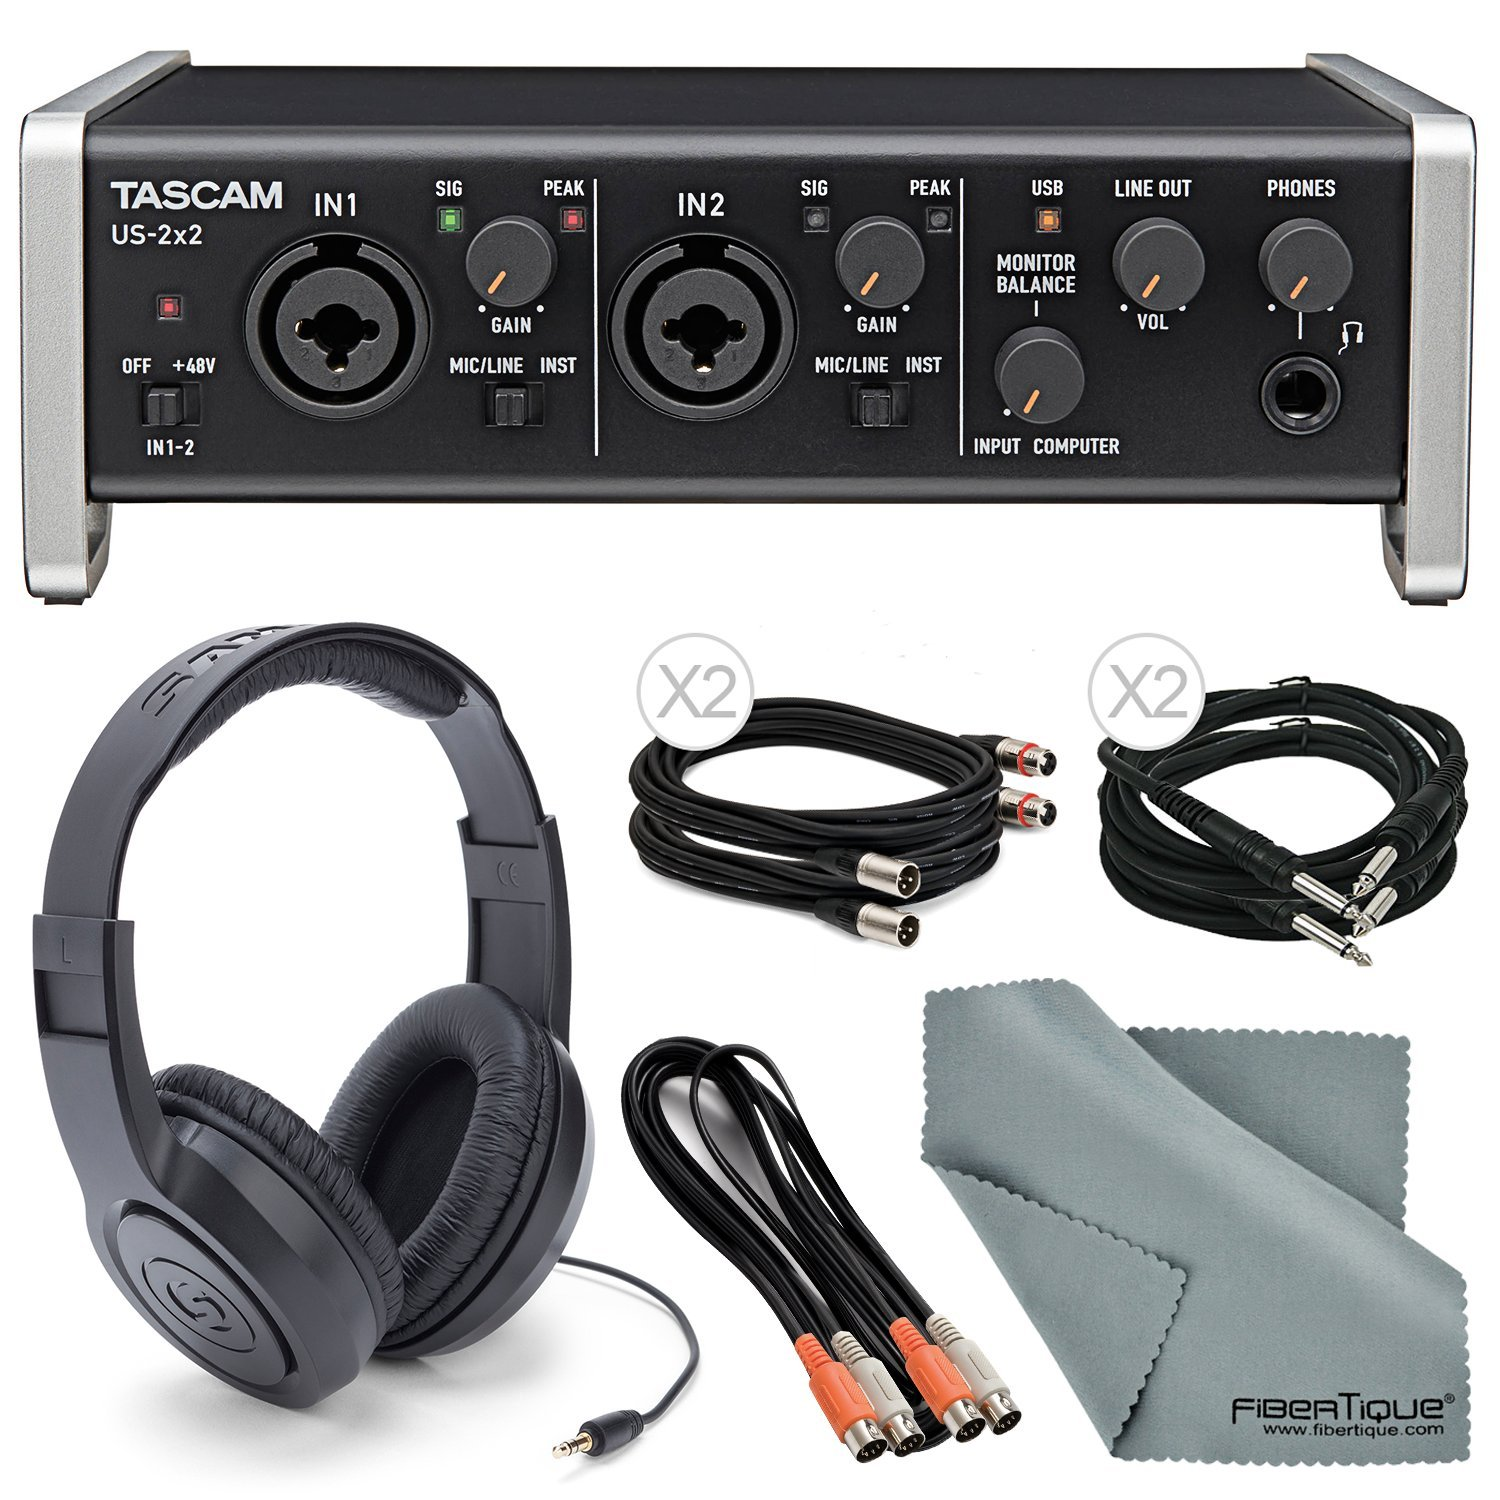 Tascam US-2x2 2-Channel USB Audio Interface Deluxe Bundle W/Dual MIDI Cable + 2 X ¼'' Cable + 2 X XLR Cable + Samson Stereo Headphones+ Fibertique Cleaning Cloth by Tascam / Photo Savings